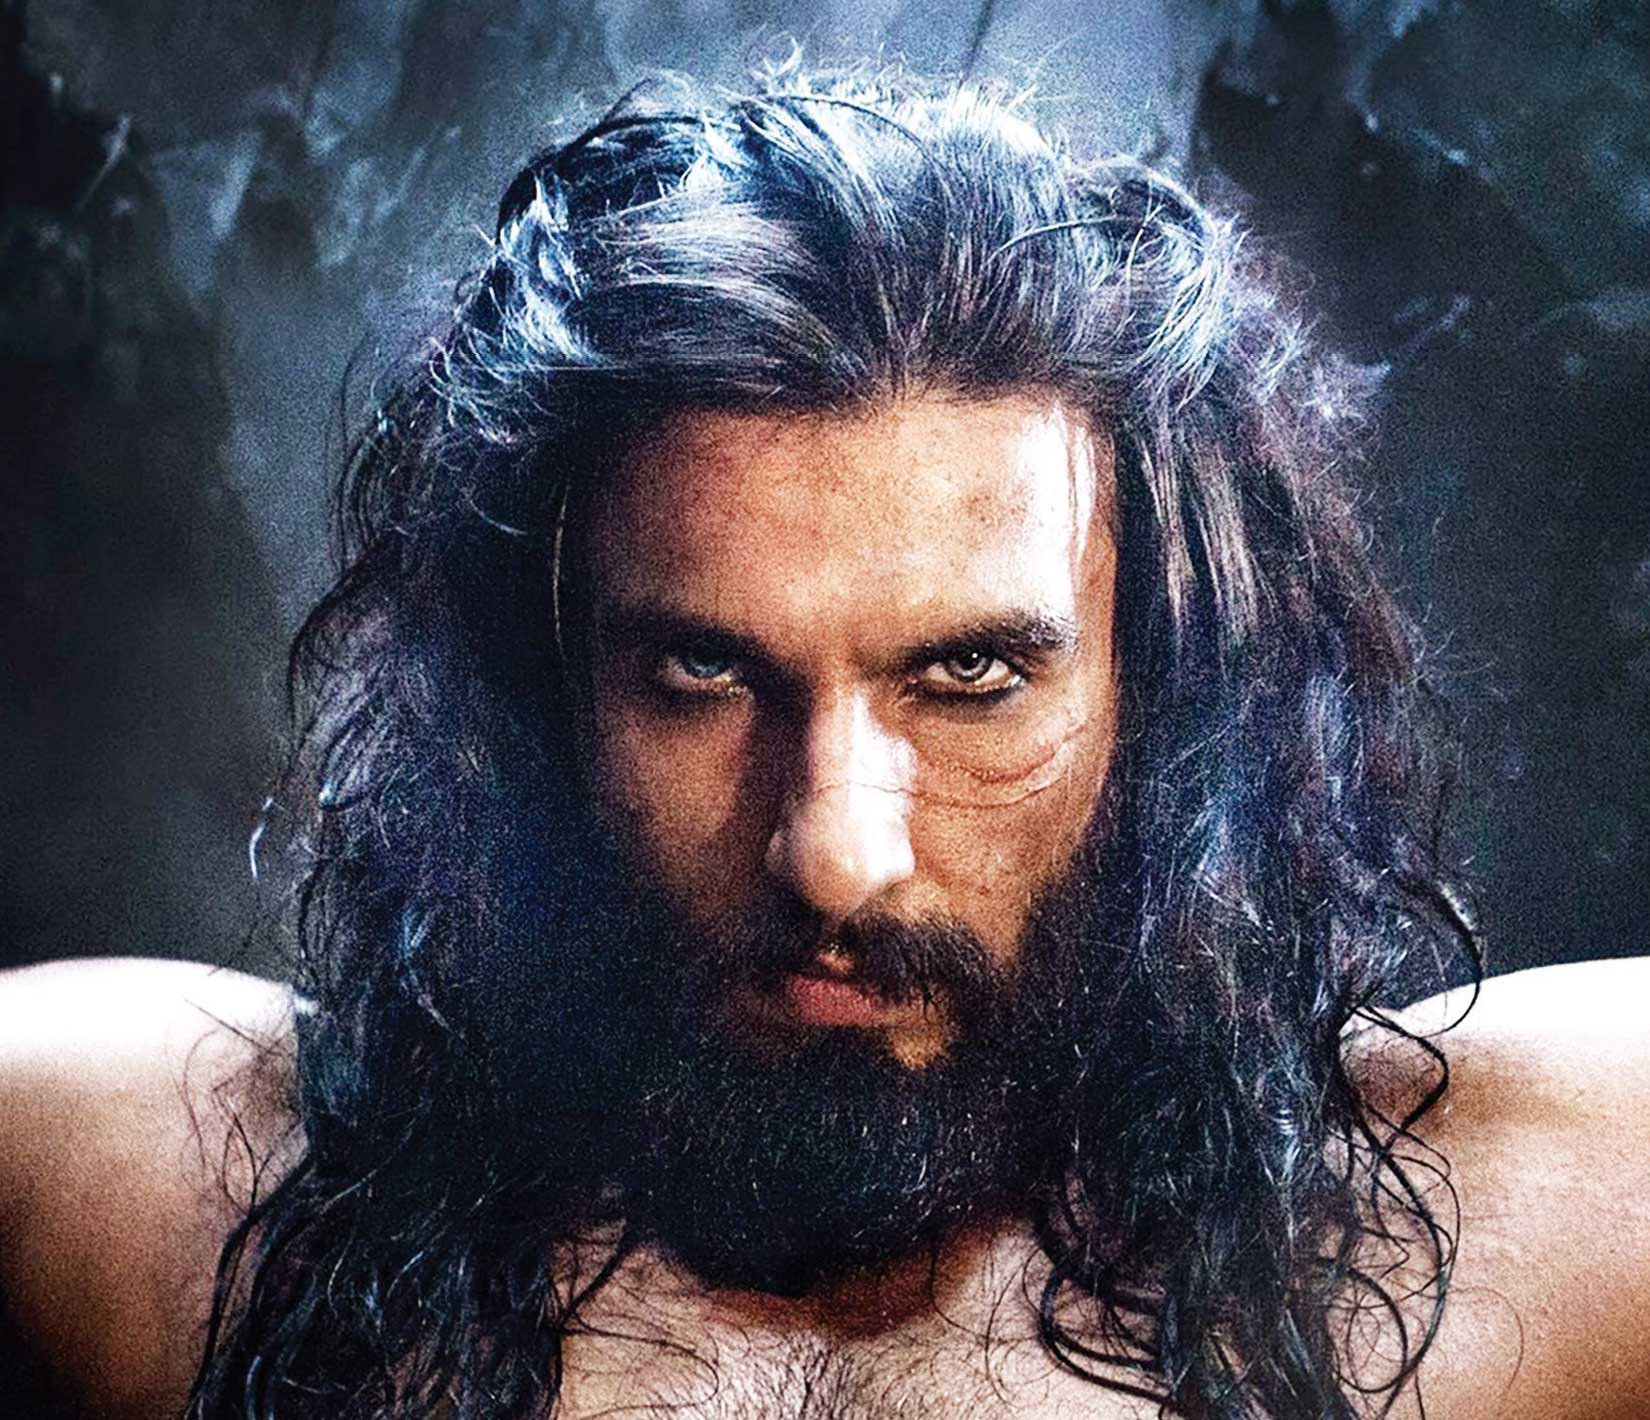 Rooting for the screen version of a plunderer named Khilji